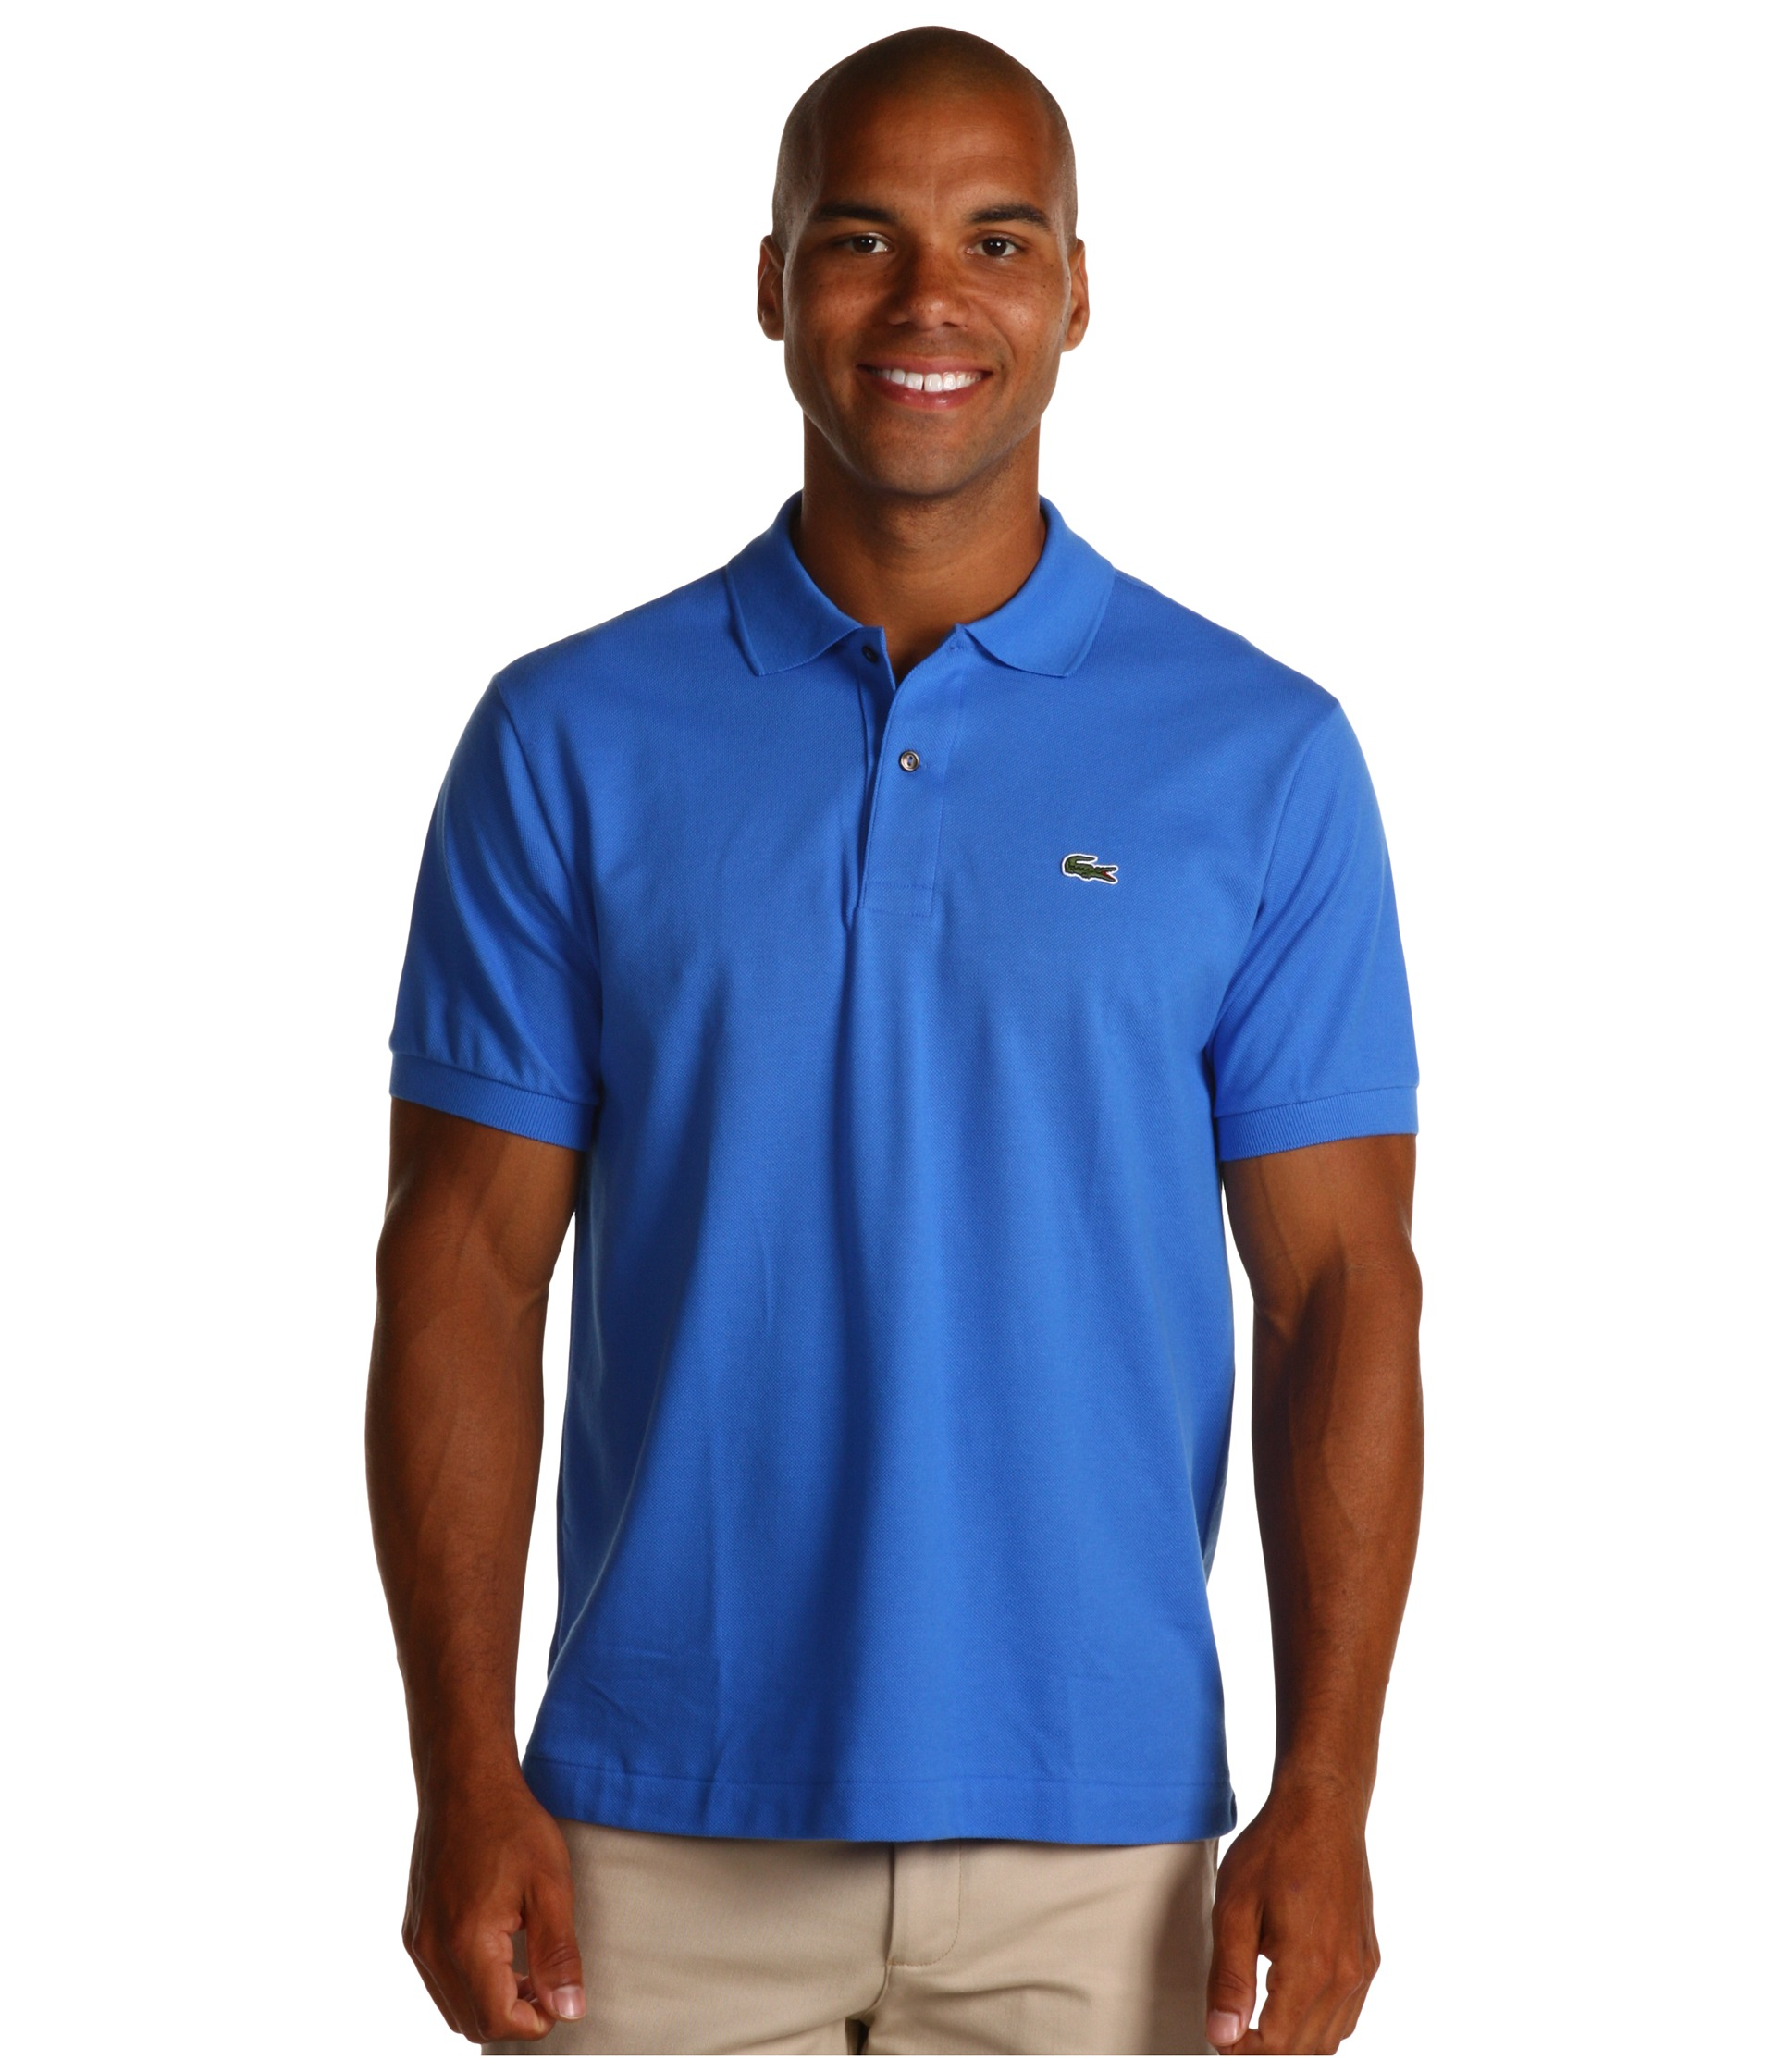 Lacoste classic pique polo shirt shipped free at zappos for Lacoste size 4 polo shirt